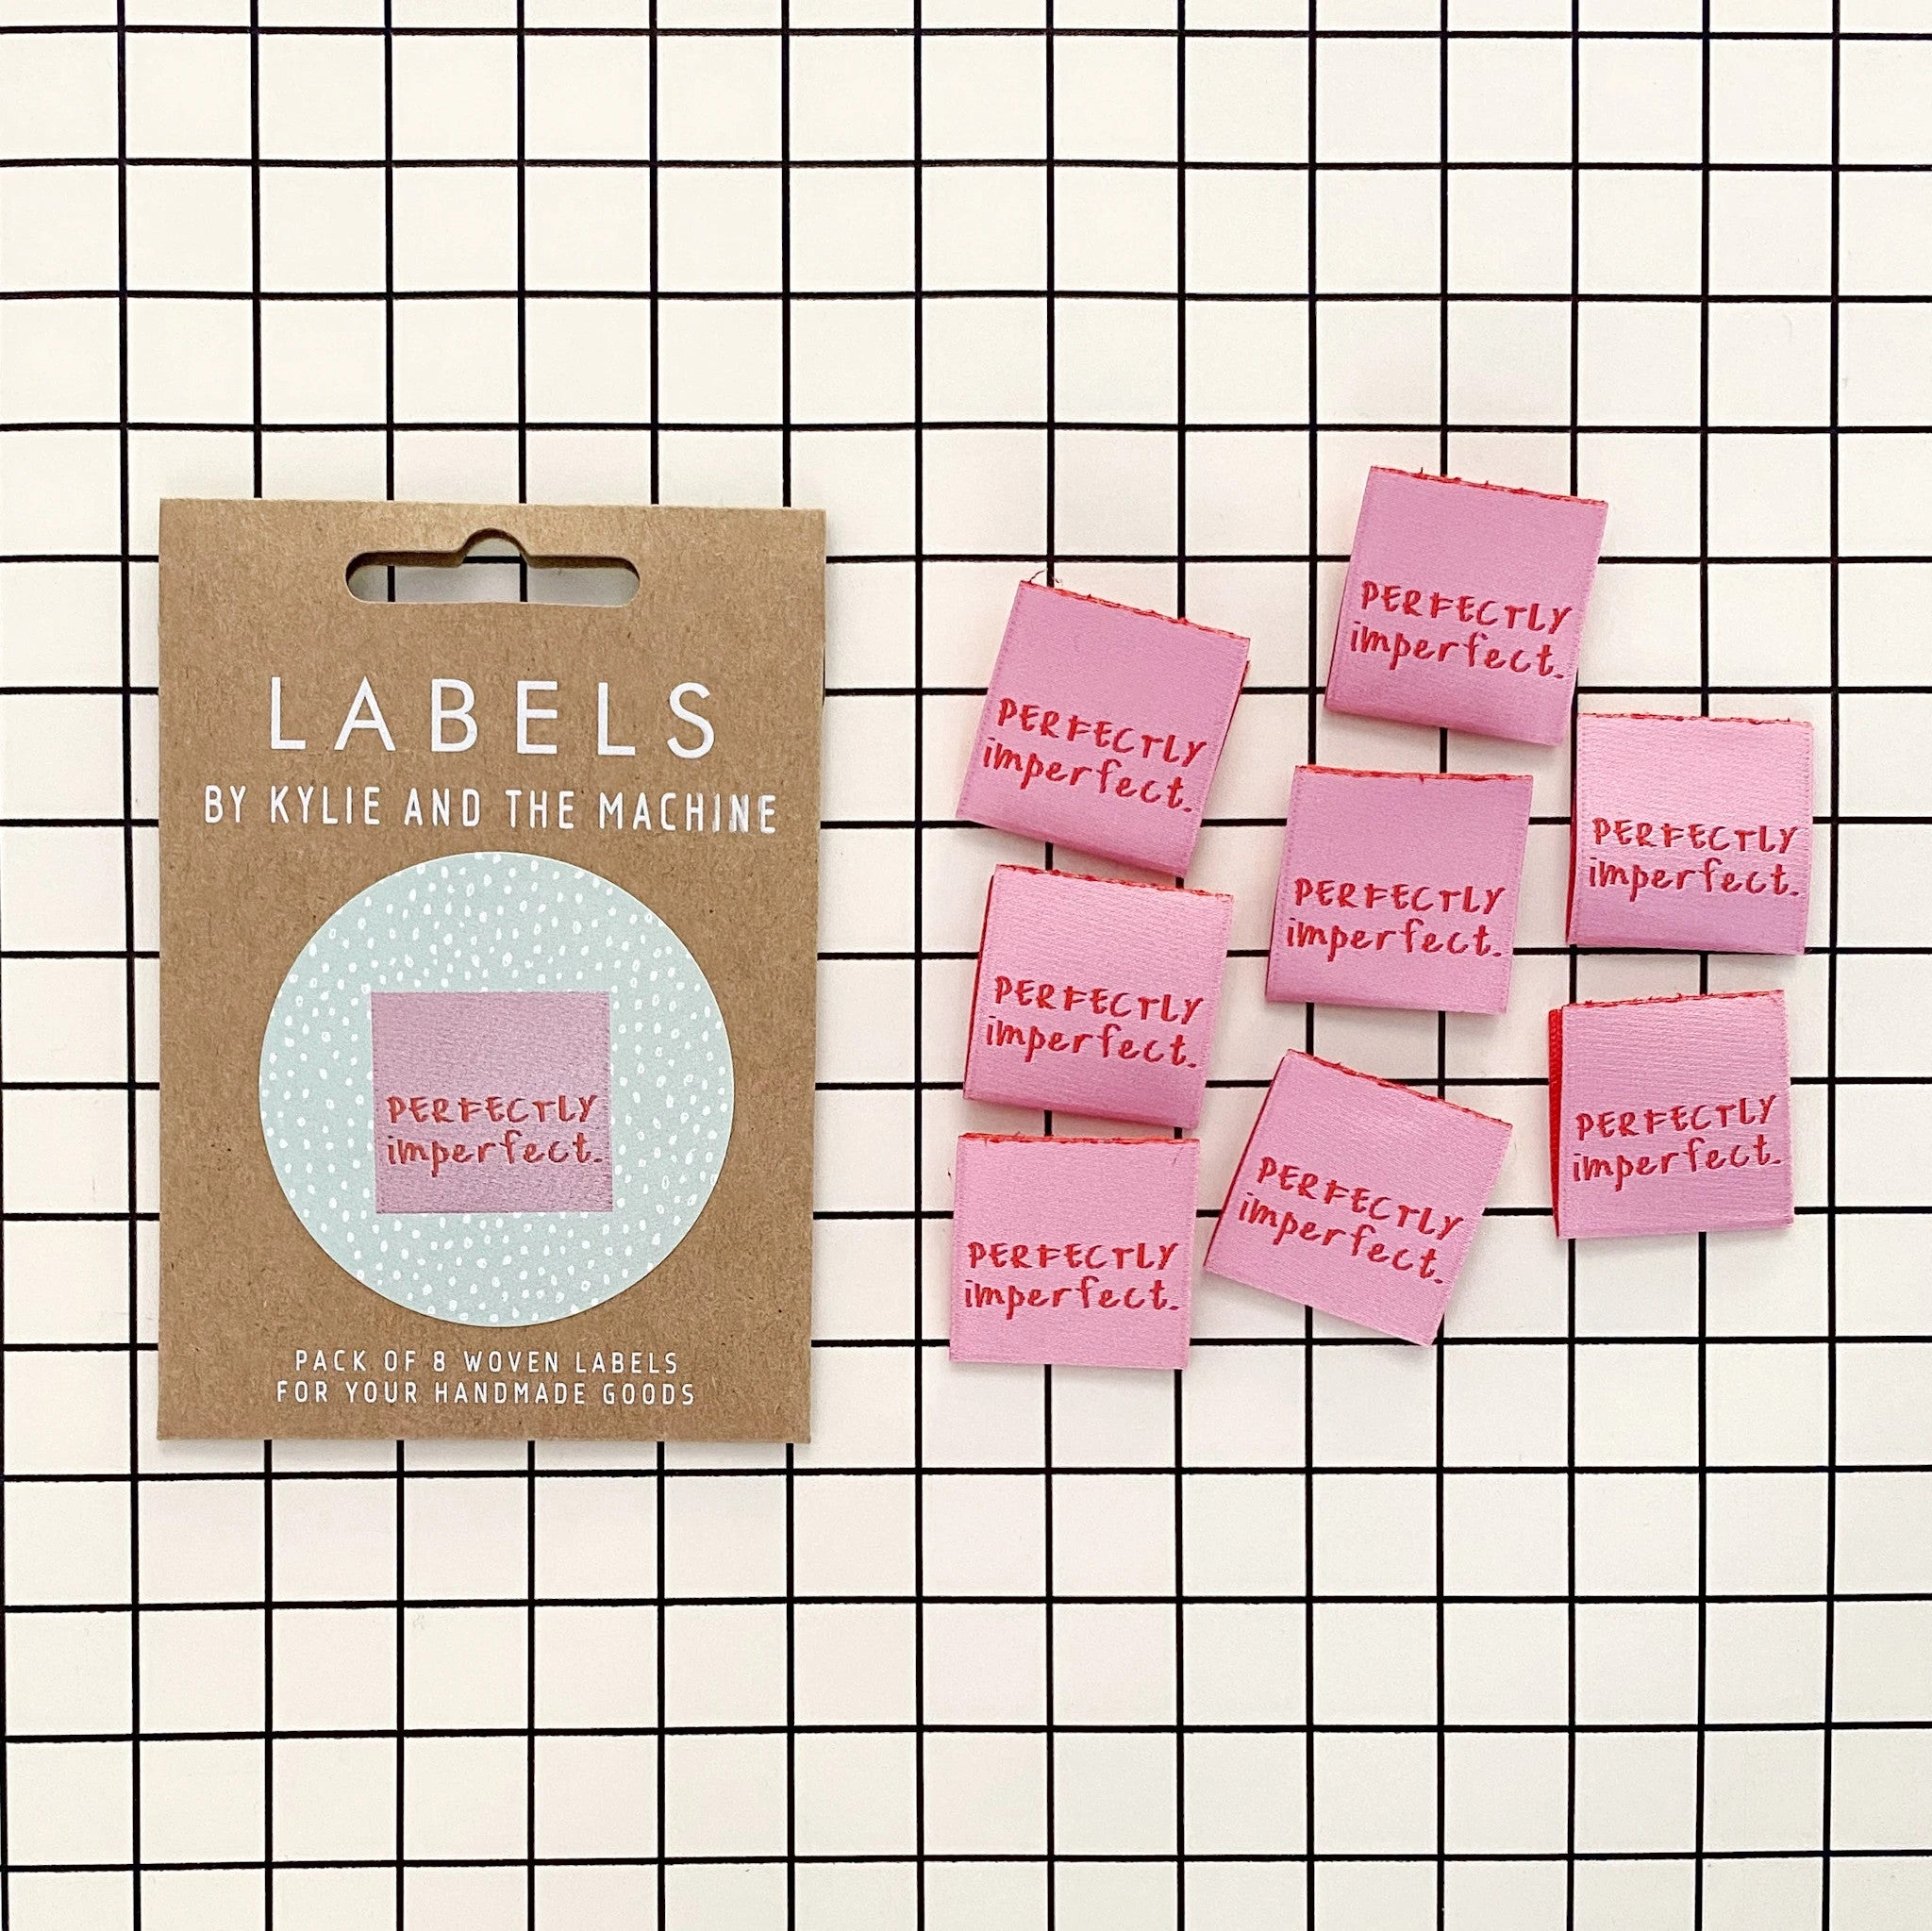 Kylie & The Machine - Perfectly Imperfect - Woven Labels 8 Pack